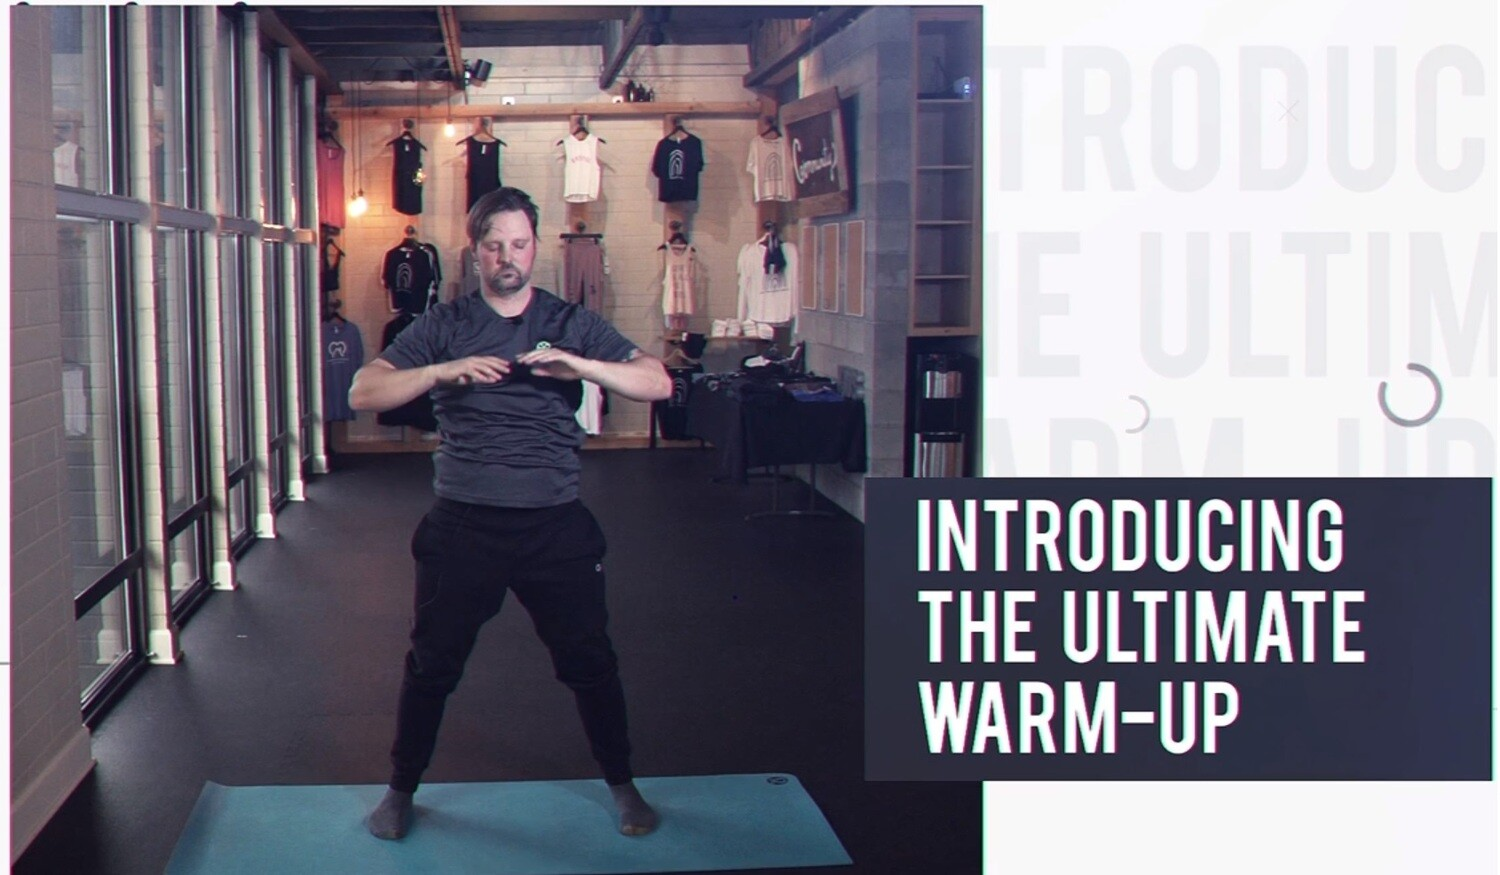 The Ultimate Warm-up Email Series